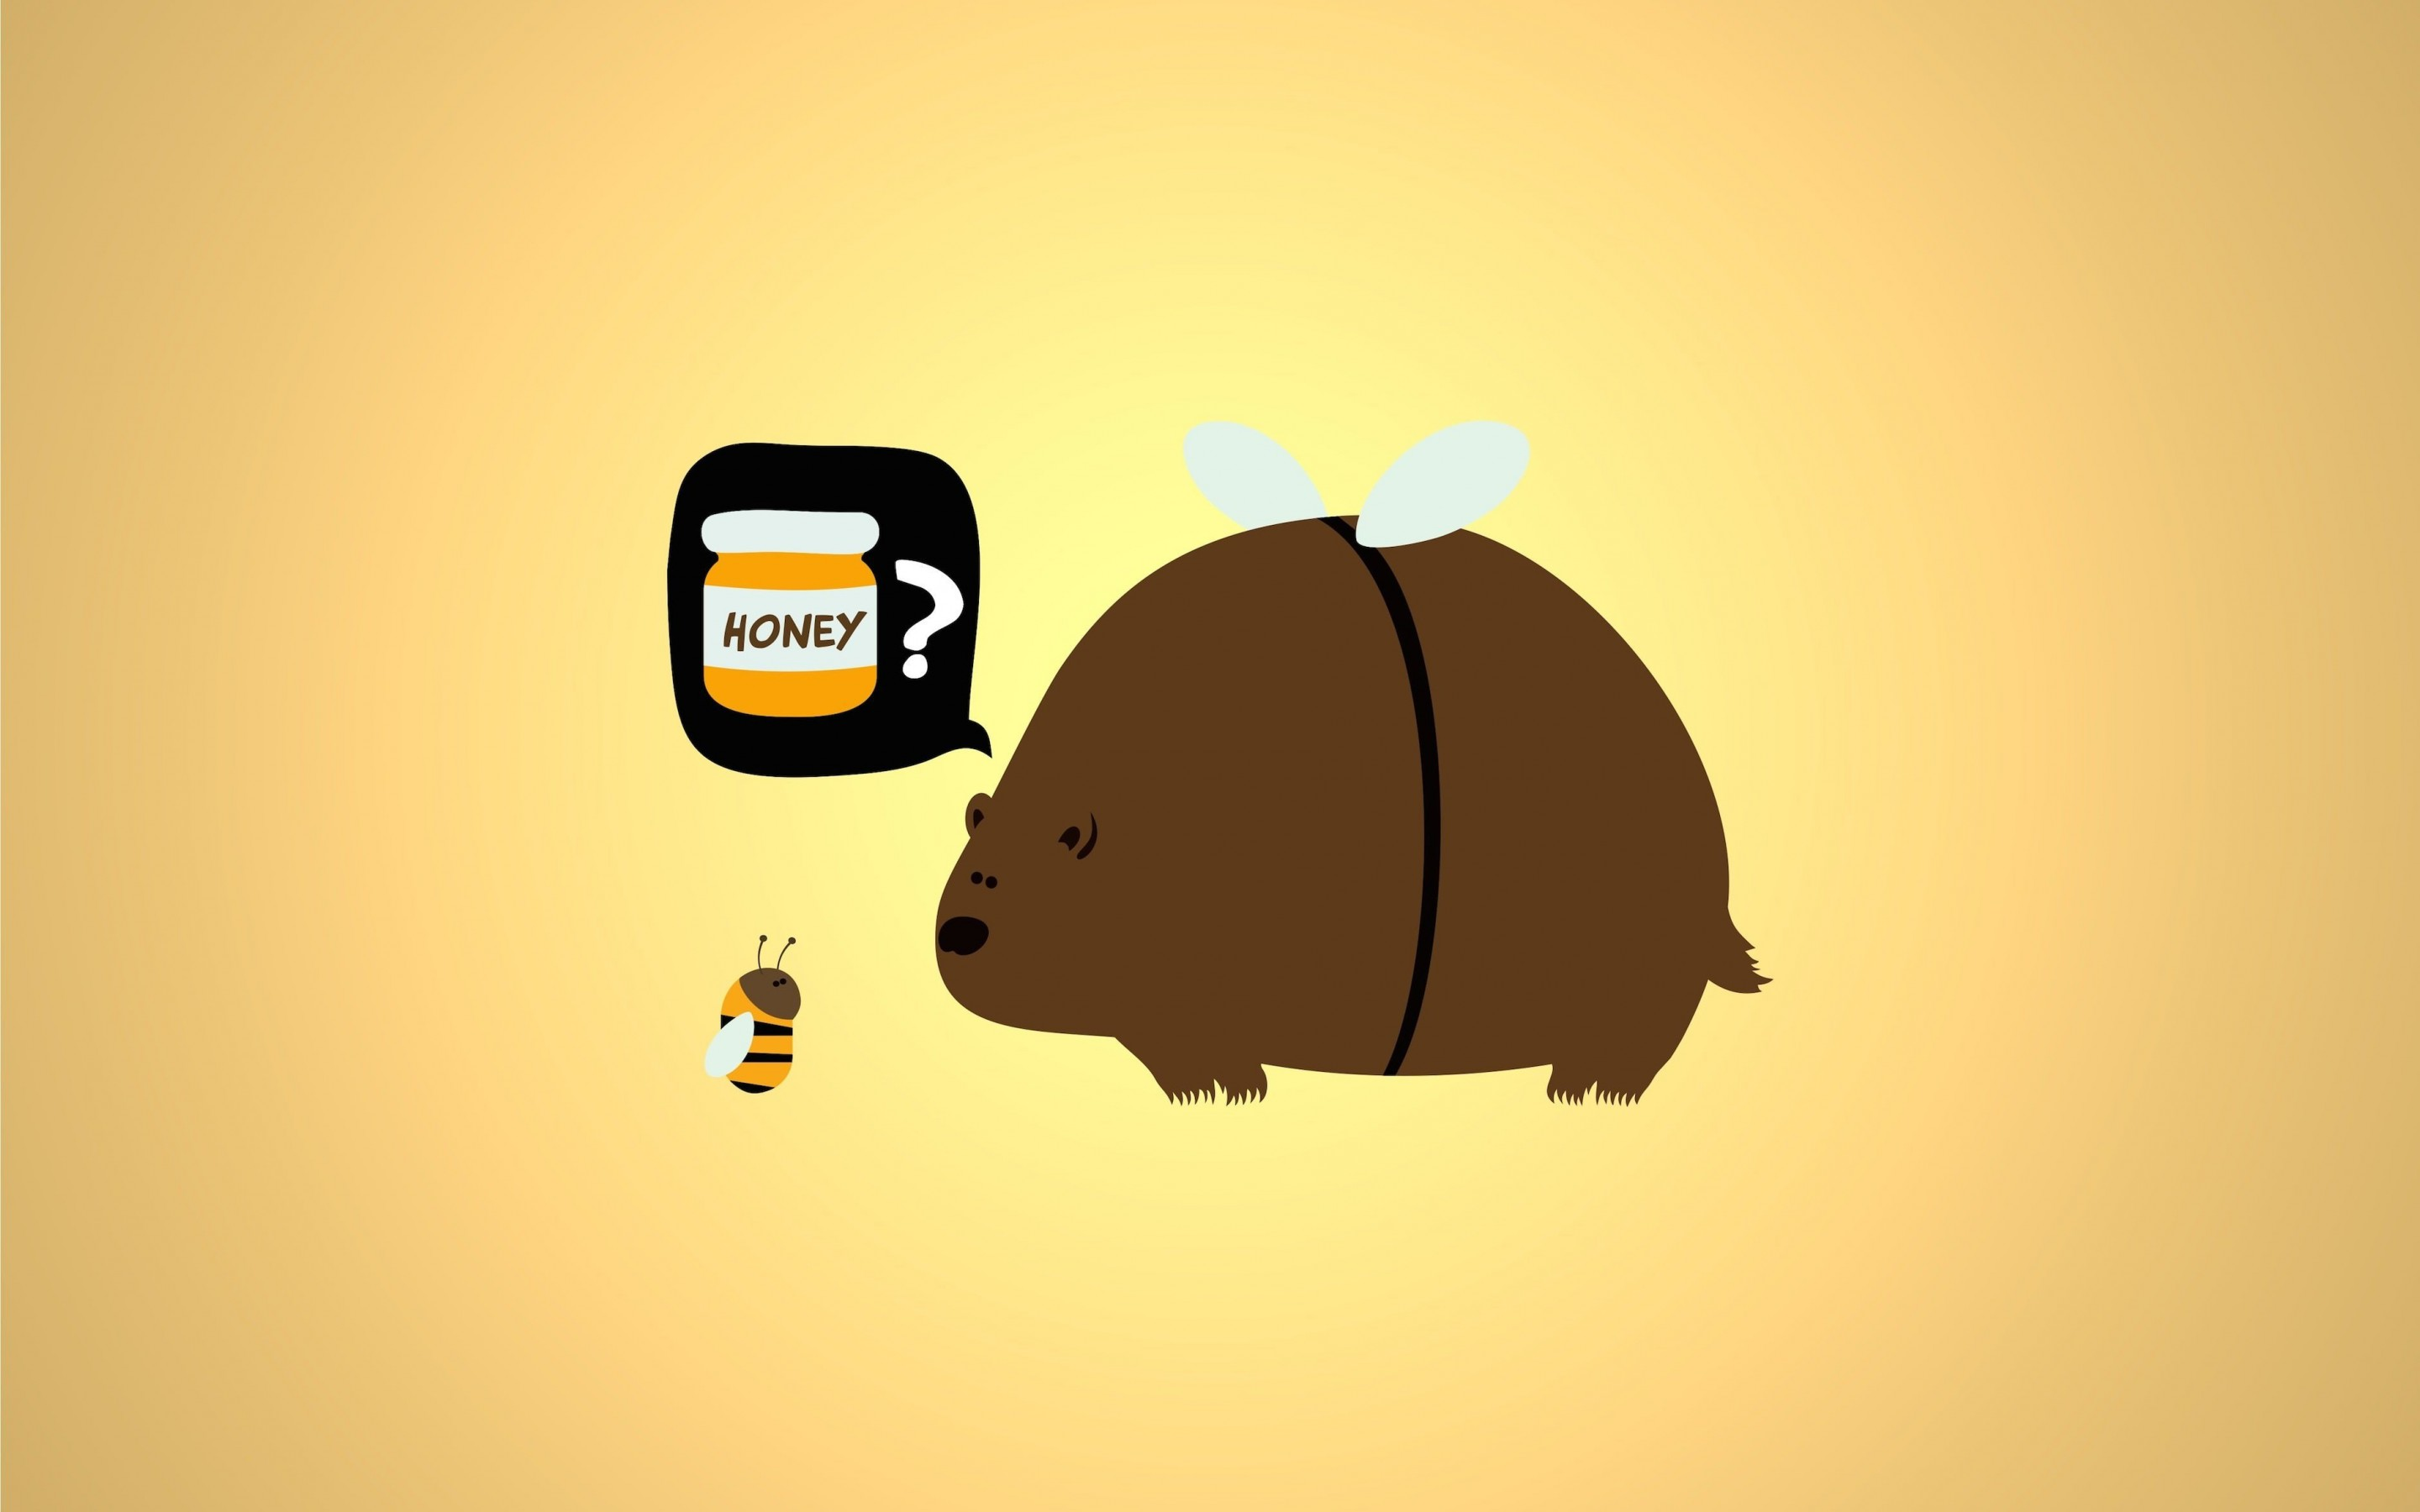 When a Bear Meet a Bee Wallpaper for Desktop 2880x1800